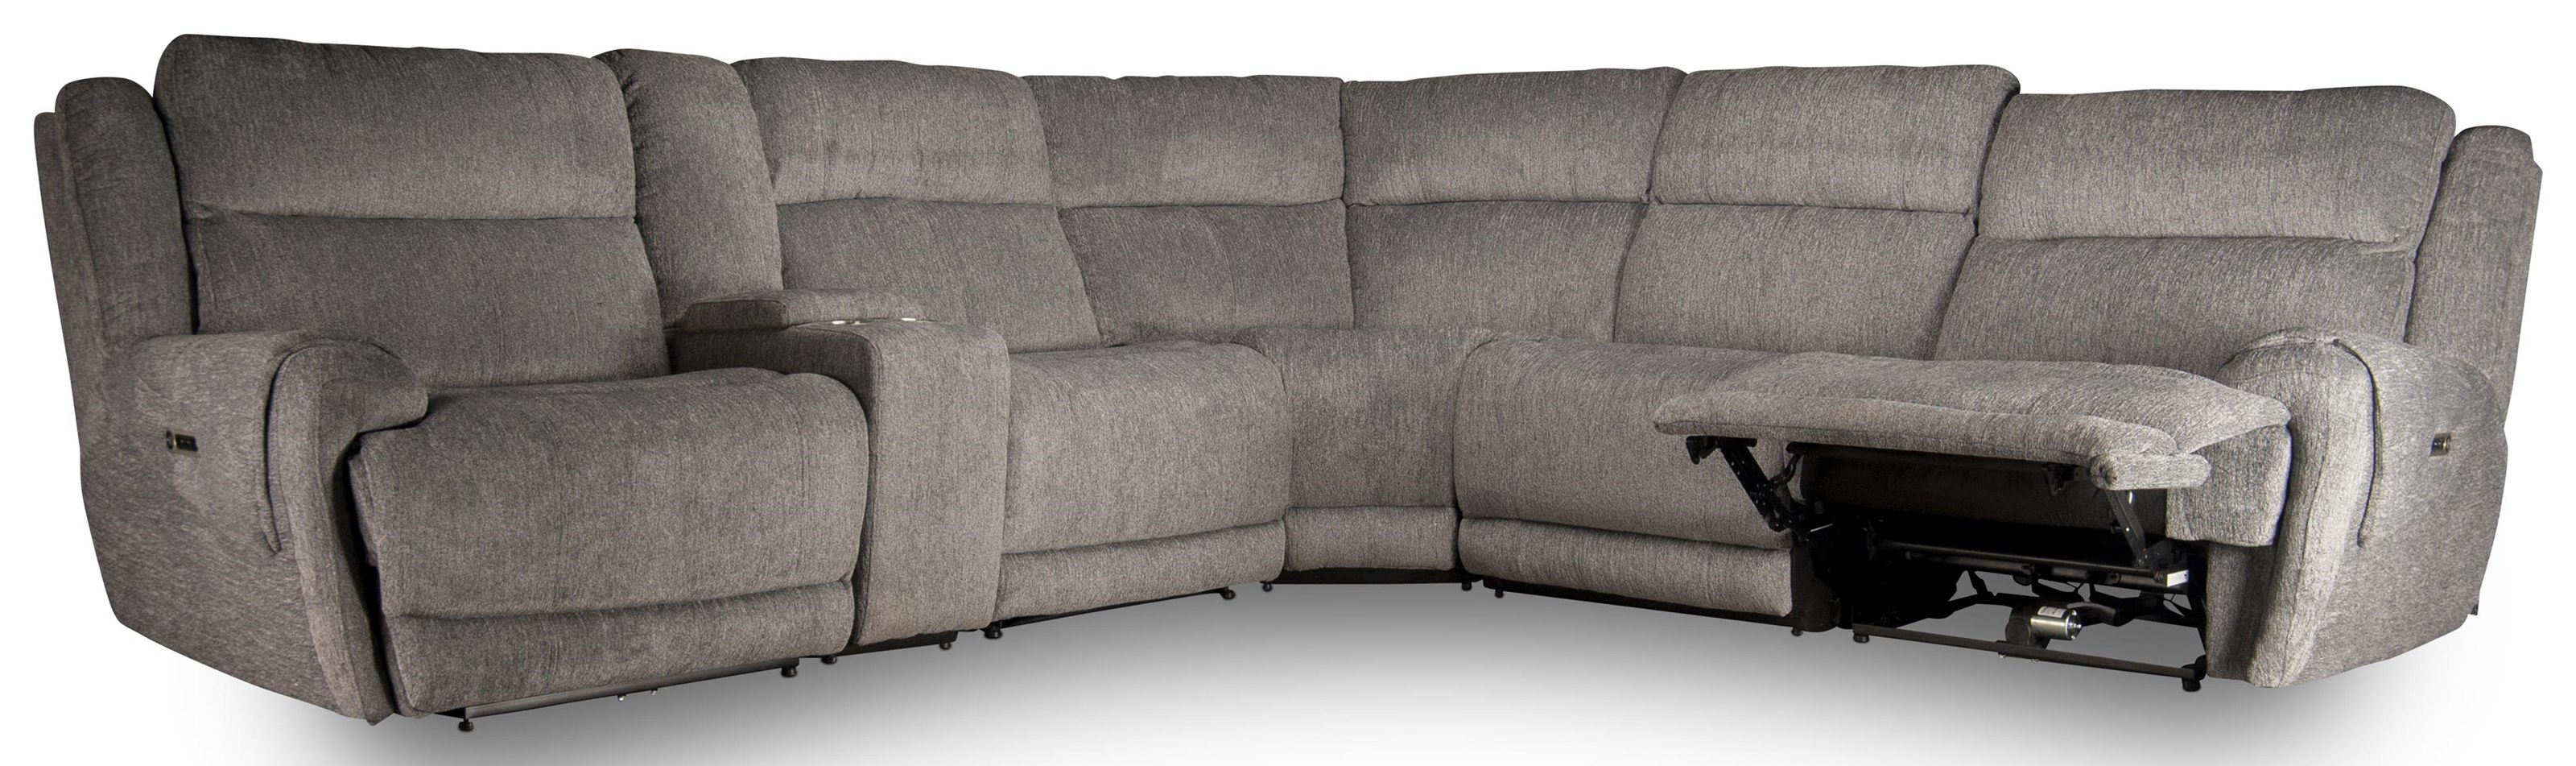 Solaris Solaris Power Sectional by Parker House at Morris Home